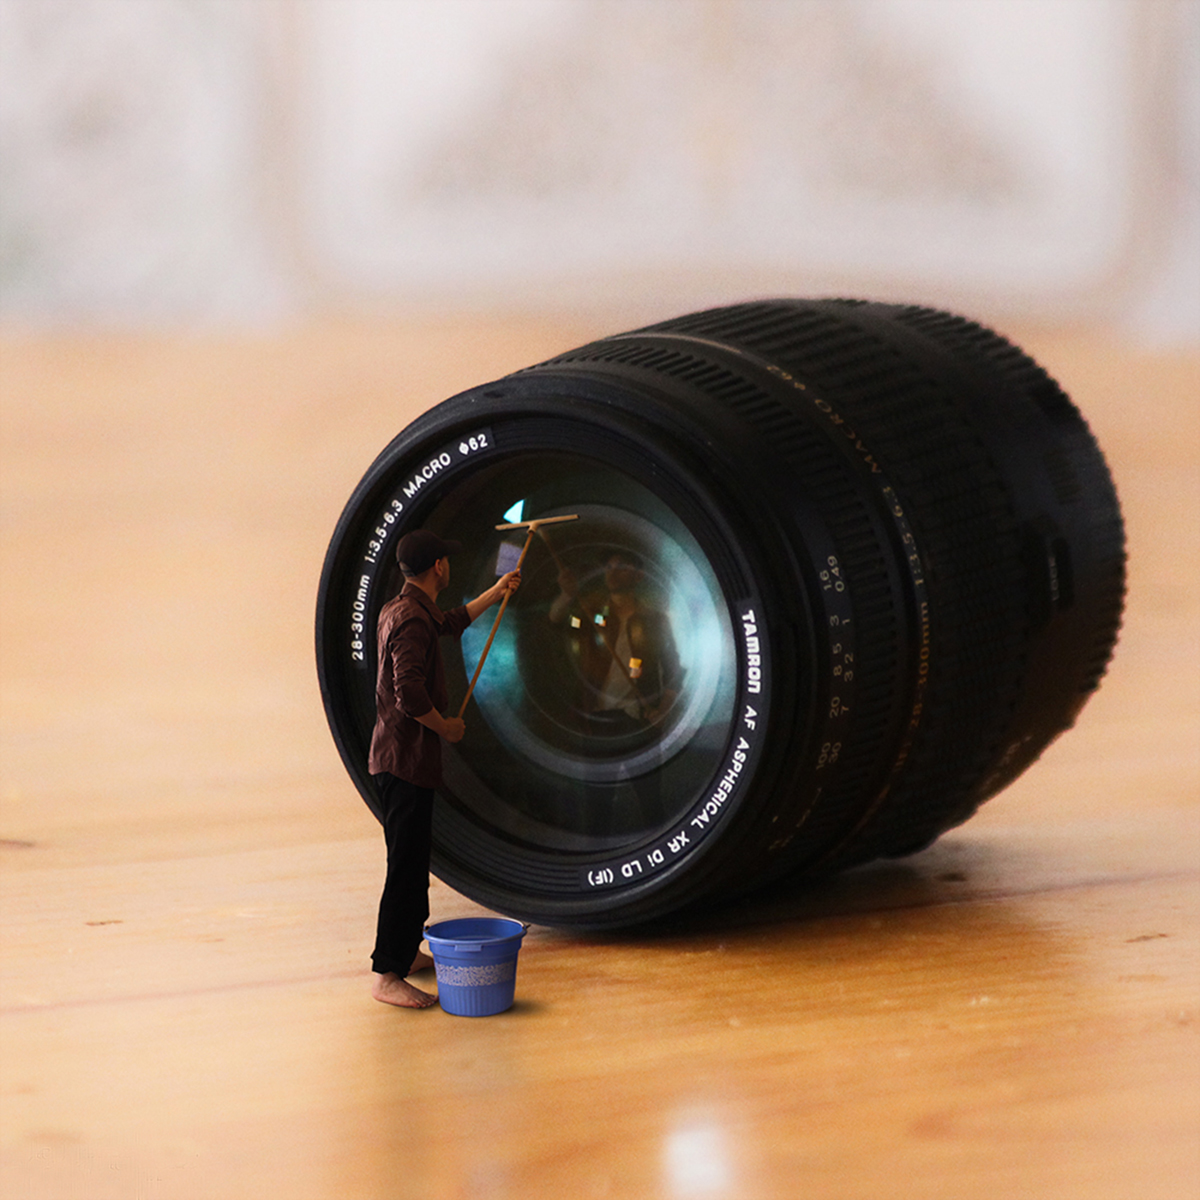 Cleaning the lens